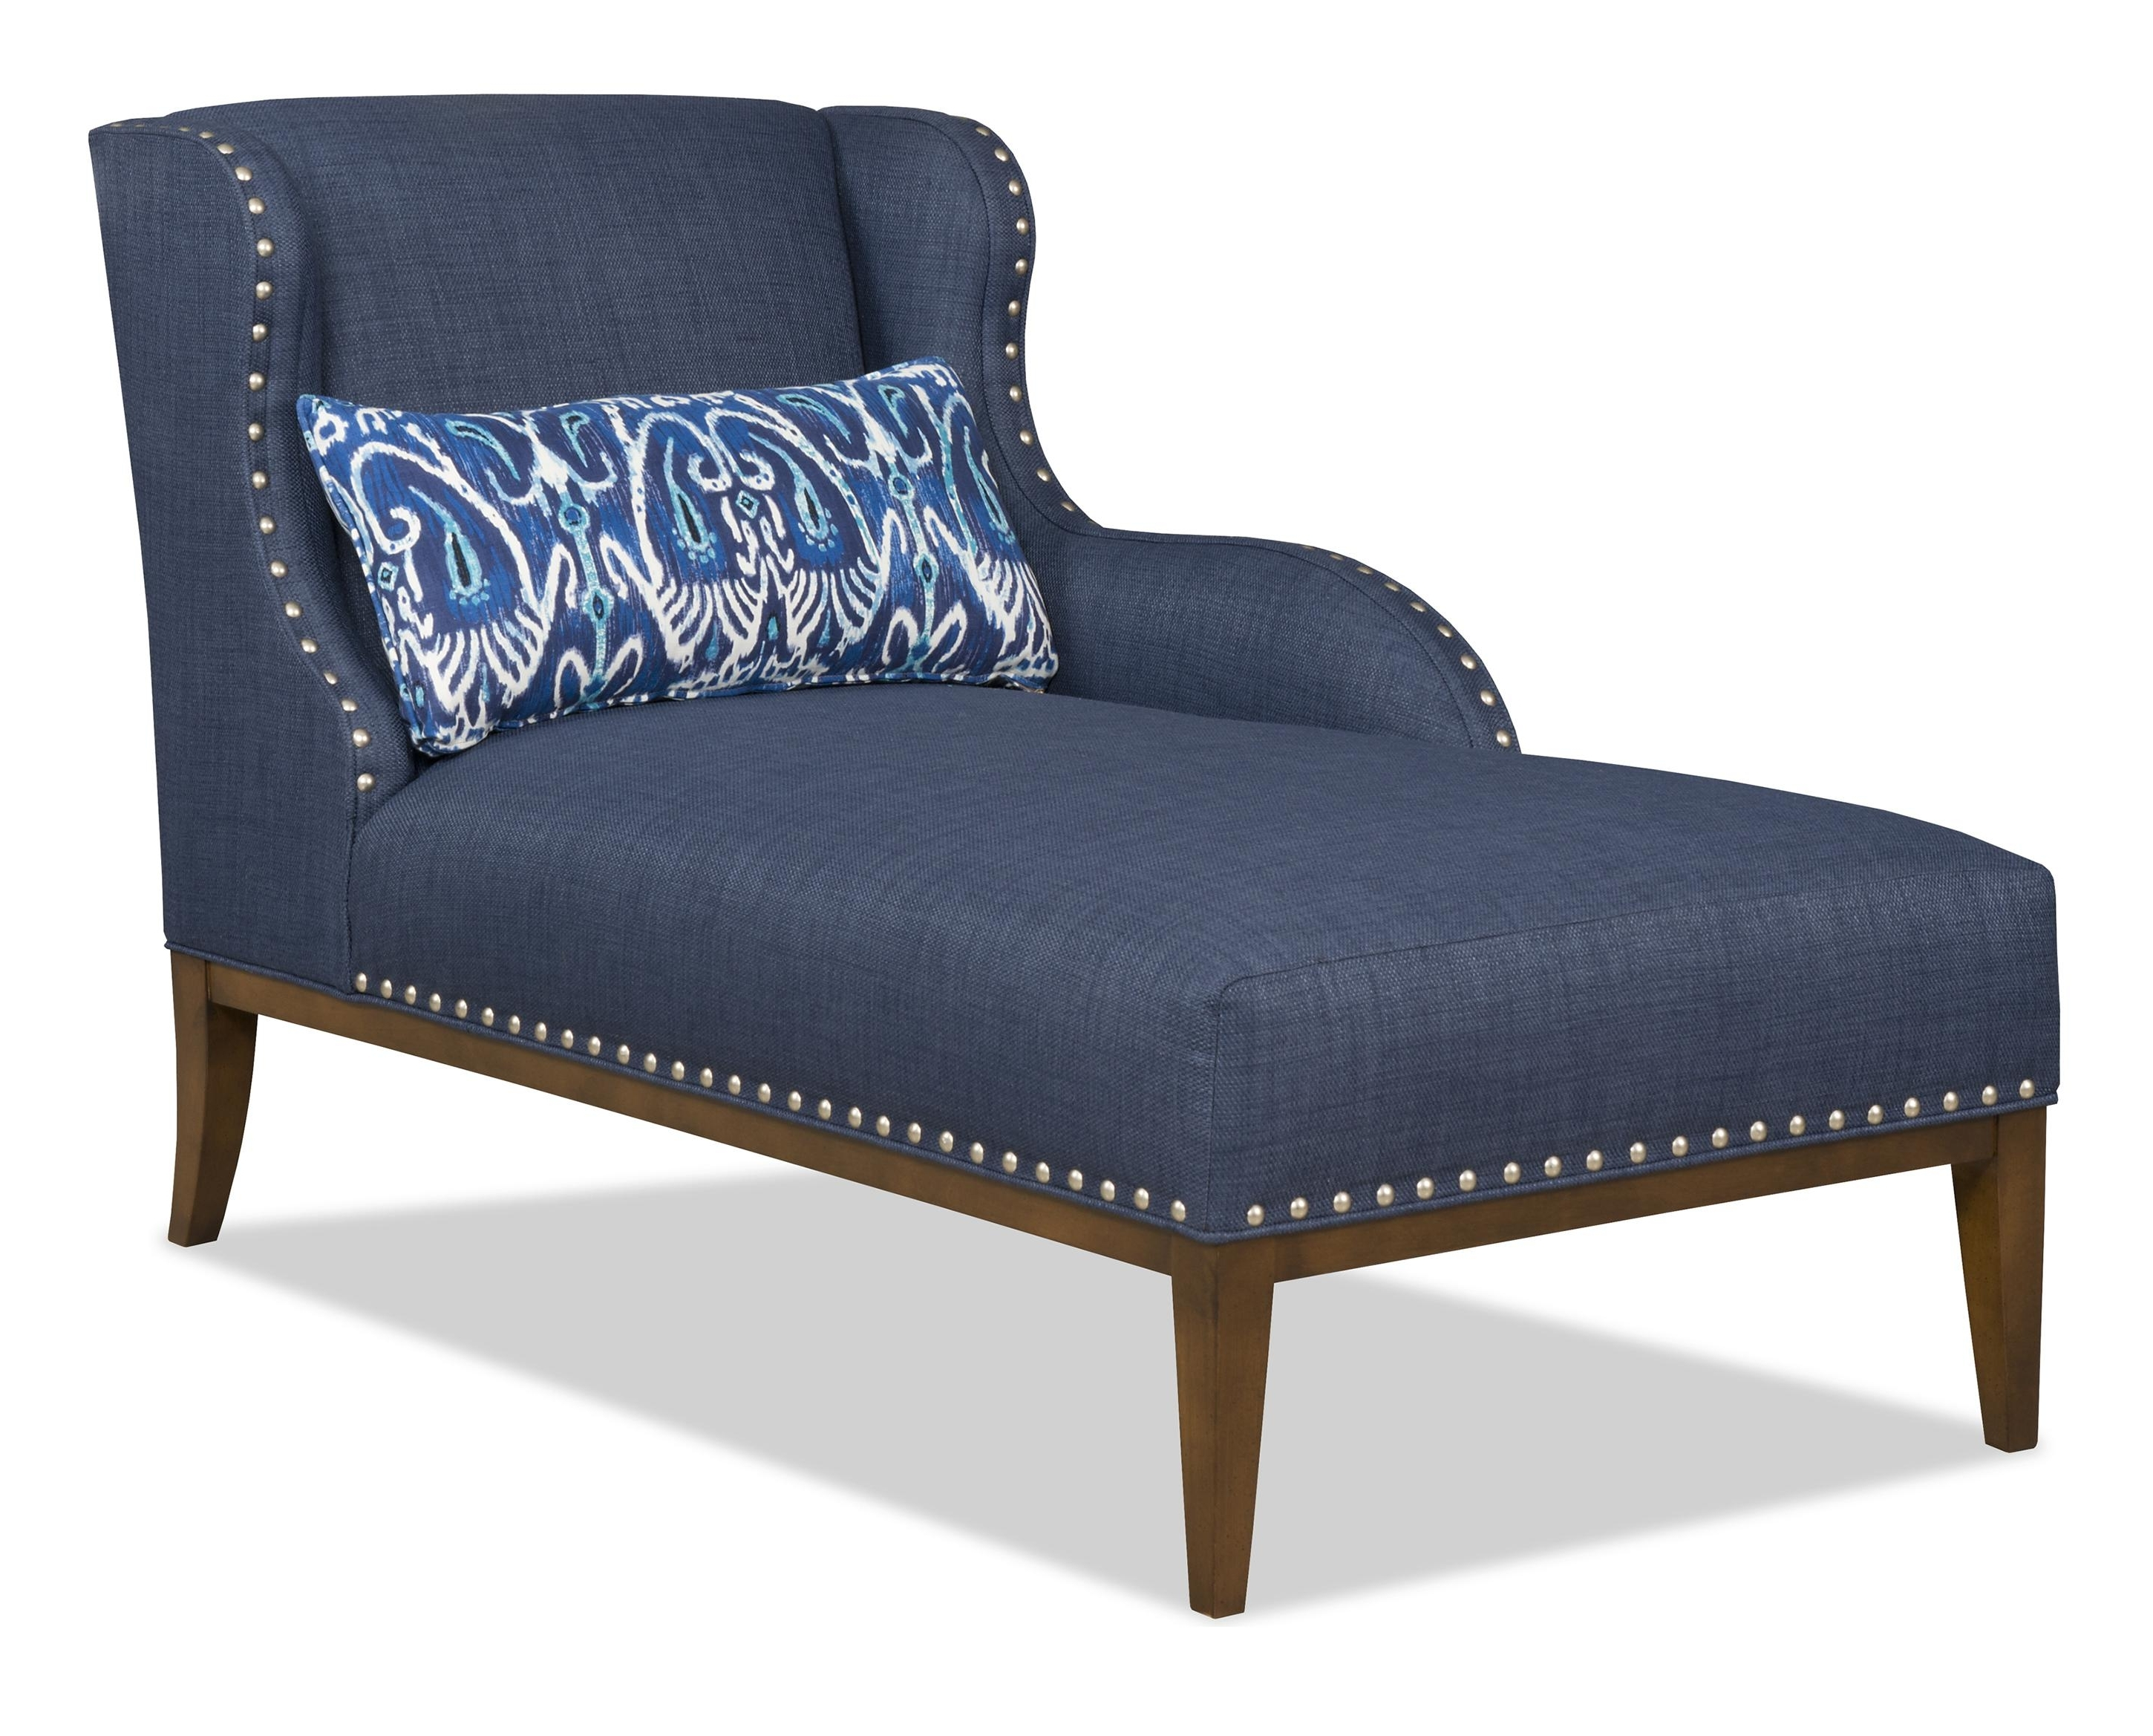 Most Recently Released Transitional Laf One Arm Chaise With Nailhead Trimsam Moore Pertaining To One Arm Chaises (View 7 of 15)